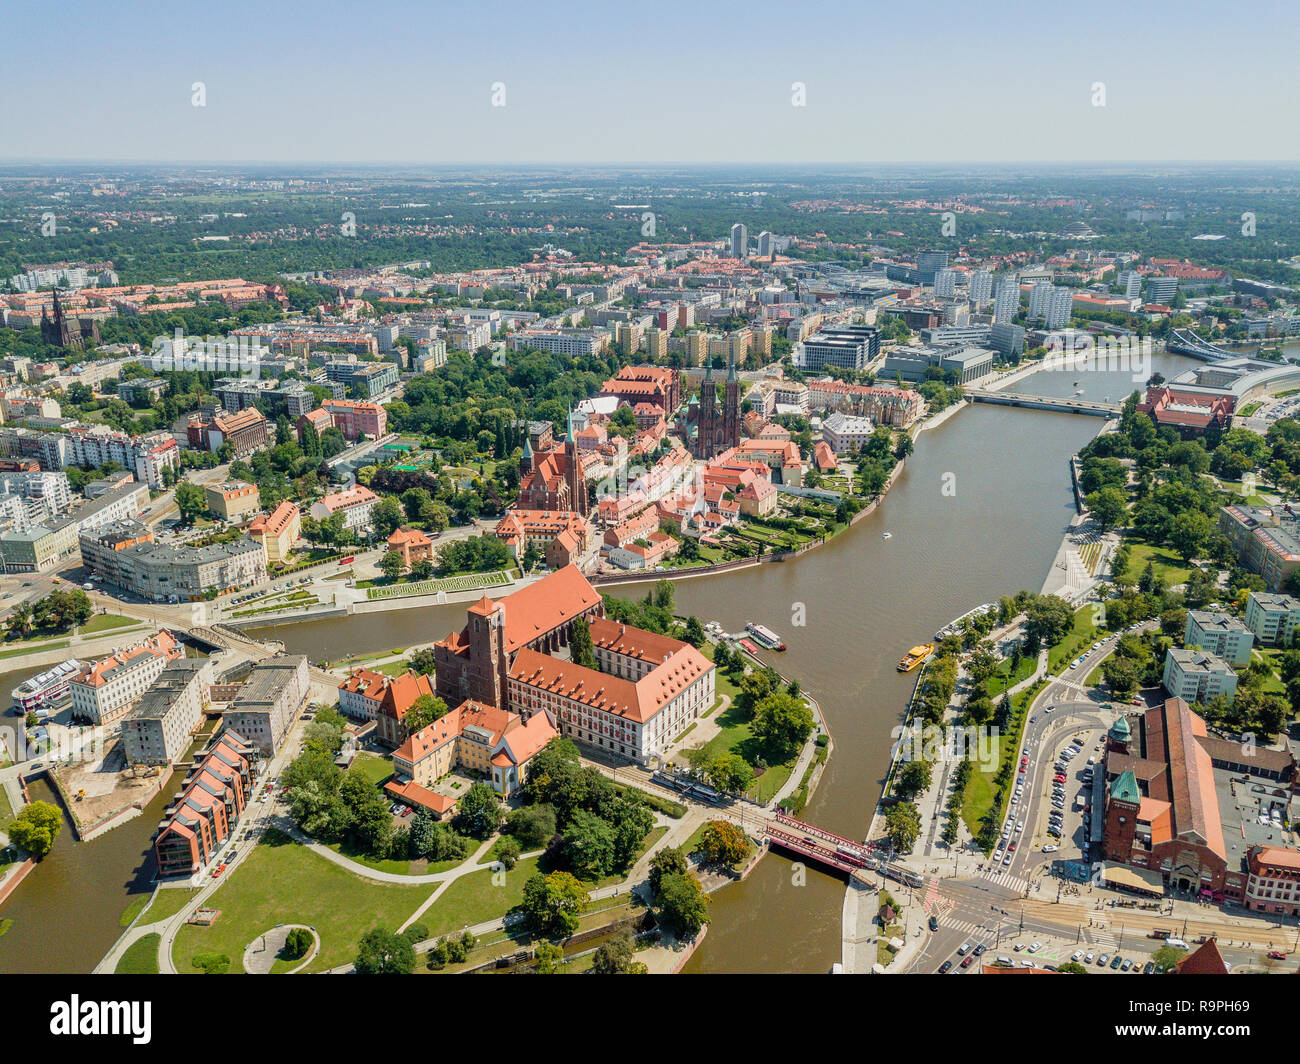 Aerial view of the oldest, historic part of Wroclaw located